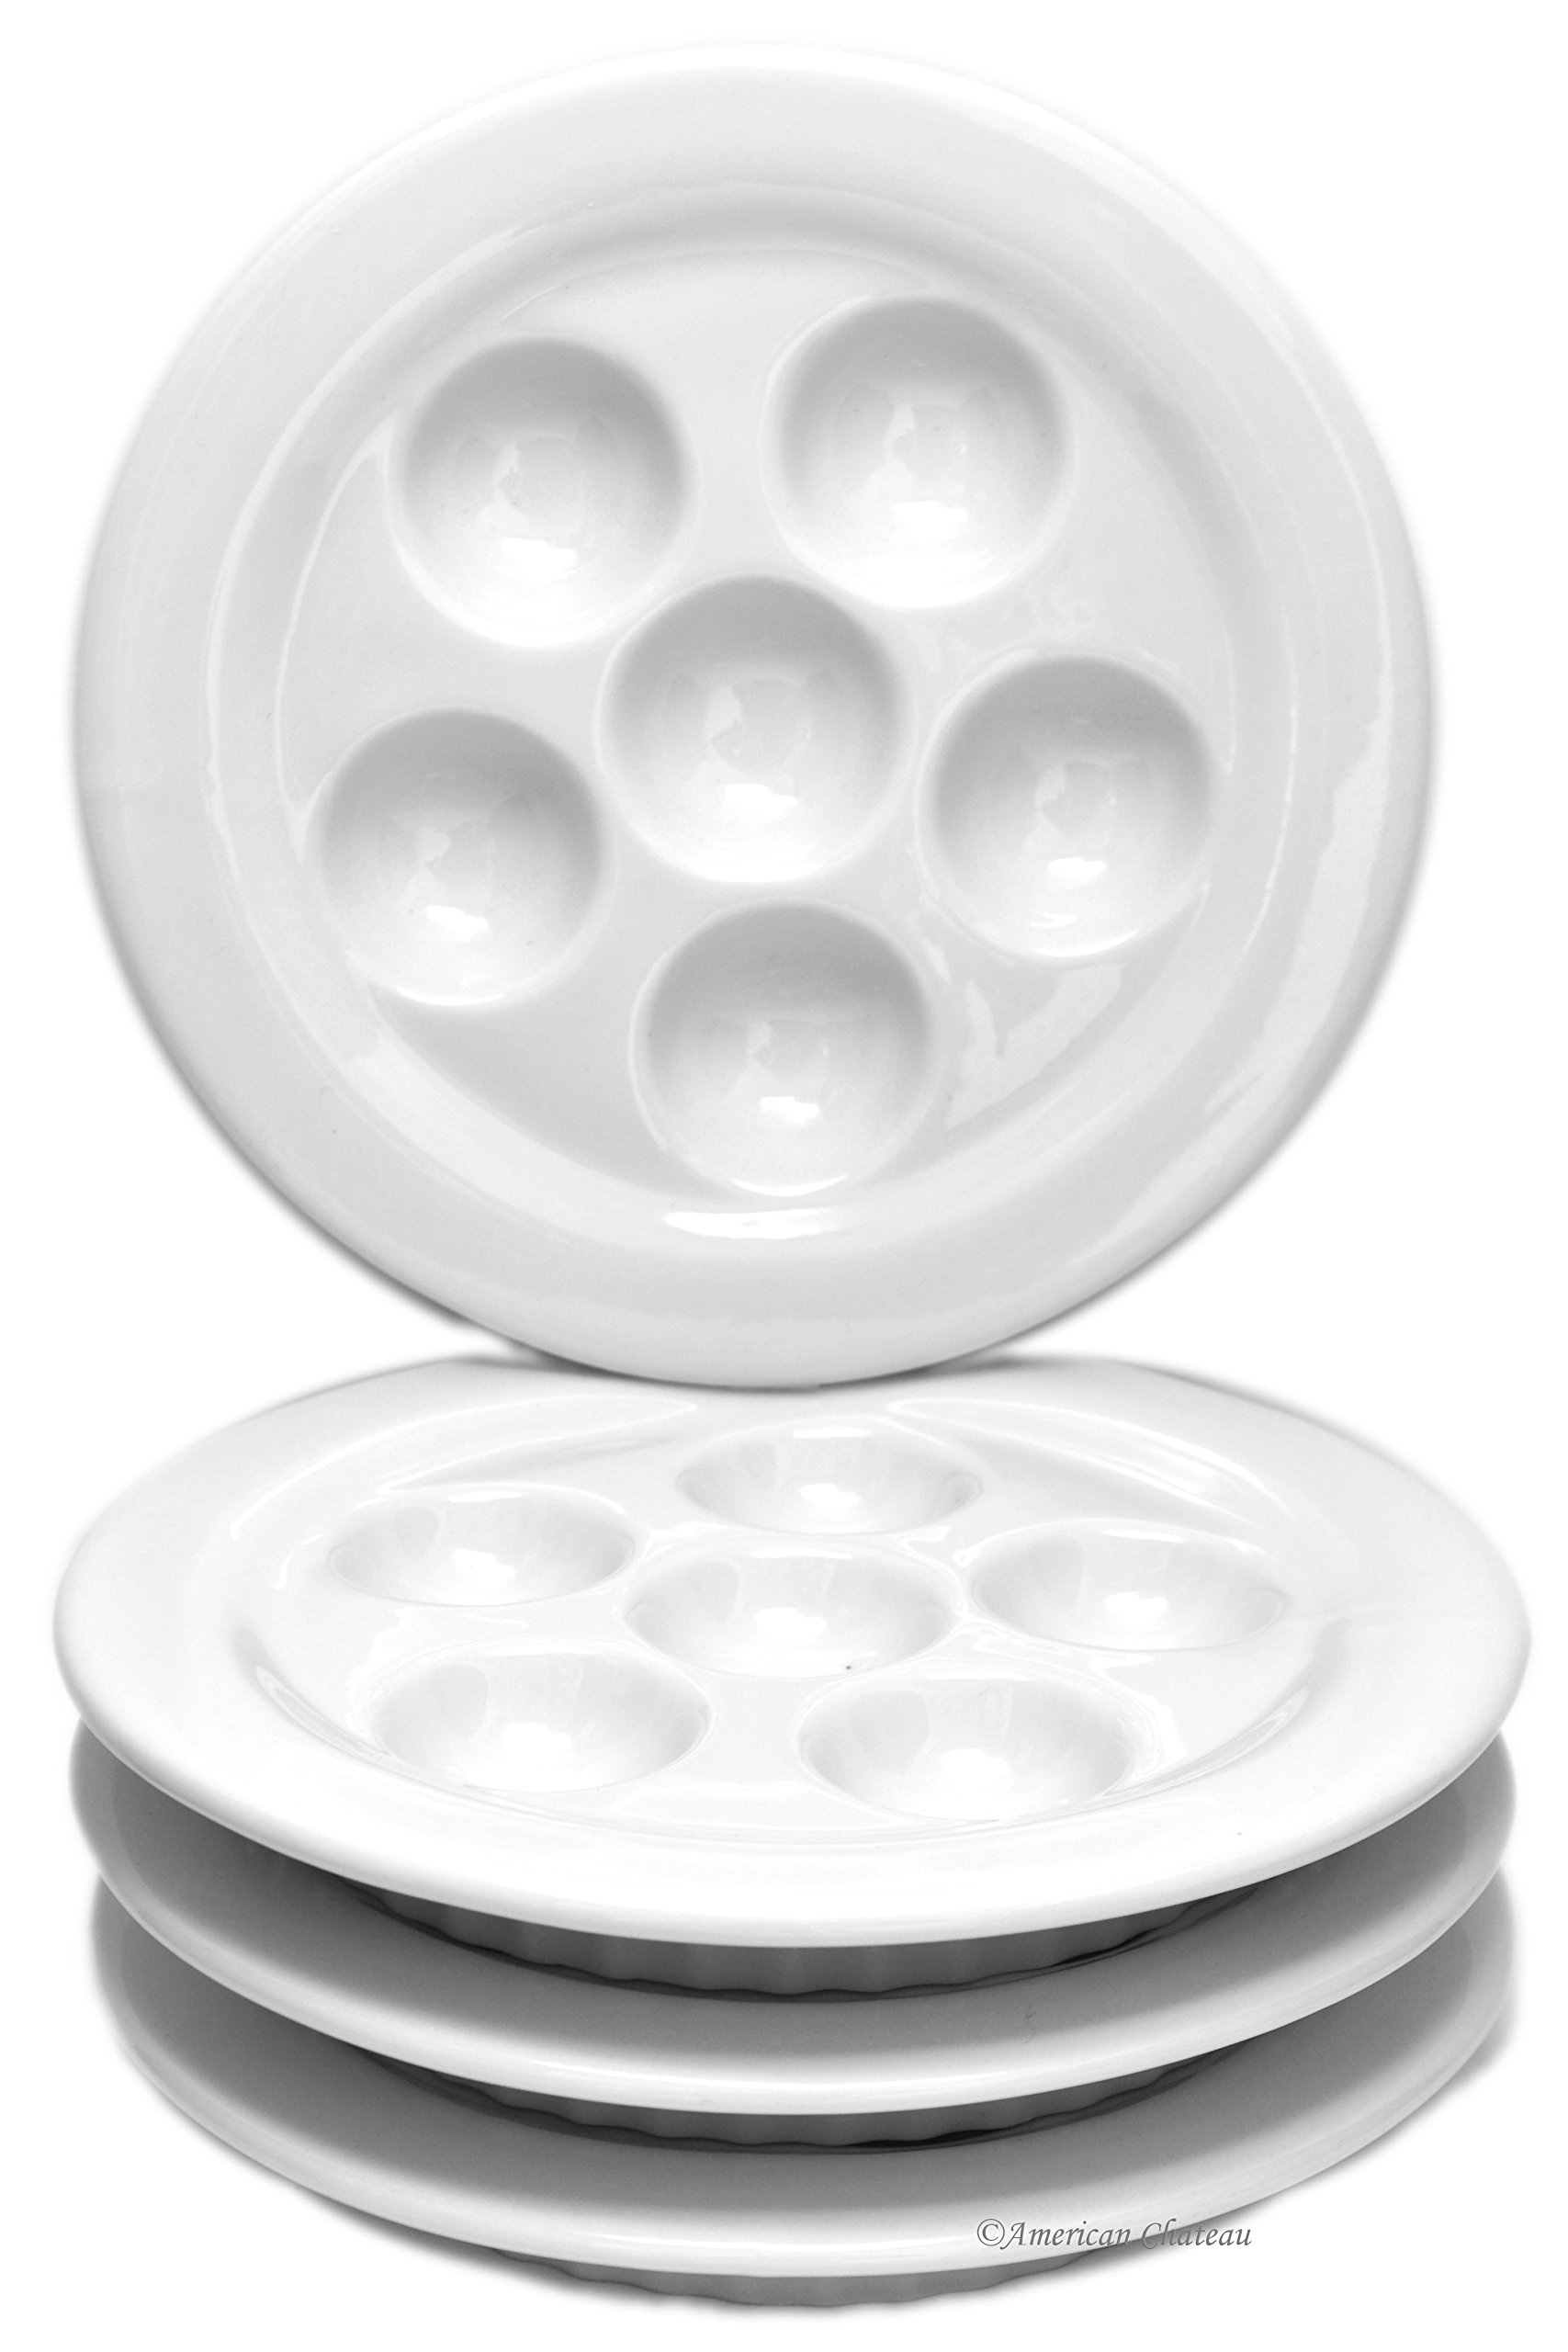 Set 4 White Porcelain Snail Dish Escargot Oven Dishes Plates with Ribbed Skirt